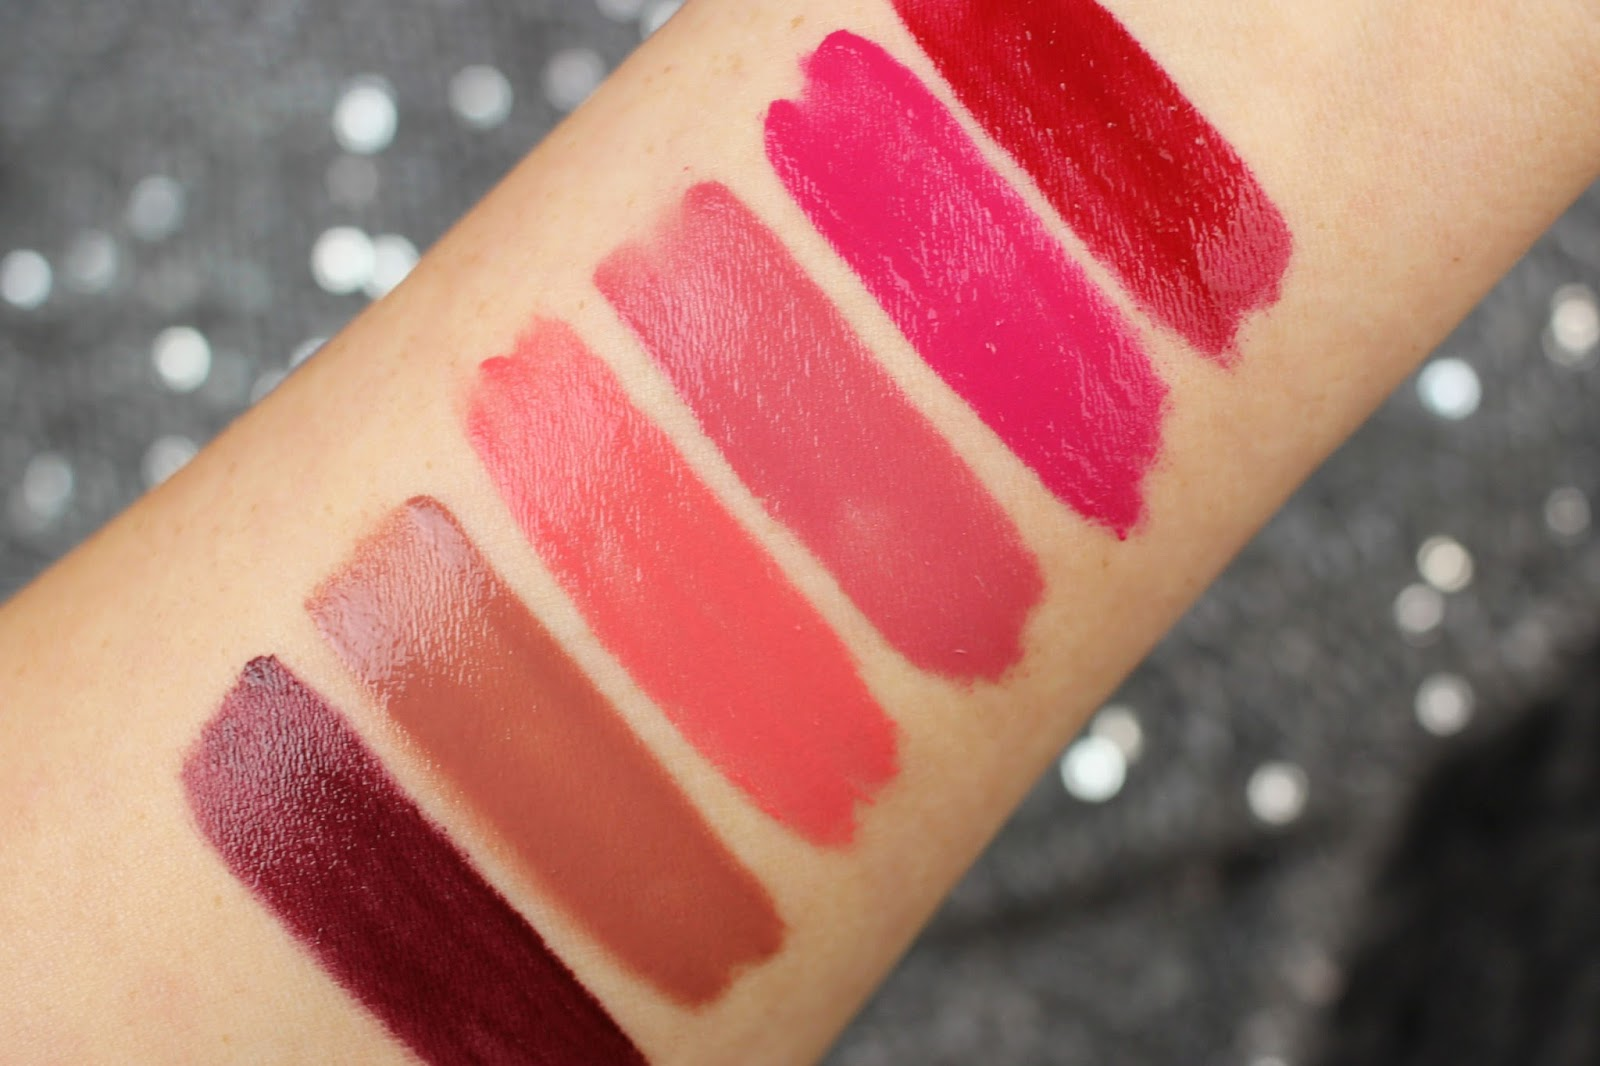 beauty blogger, cosmetics, deutschland, drogerie, farbtrends, lippenstift, liquid lipstick, mattes finish, review, revlon, rossmann, rote lippen, swatch party, swatches, tragebilder, Ultra HD Matte Lipcolor,